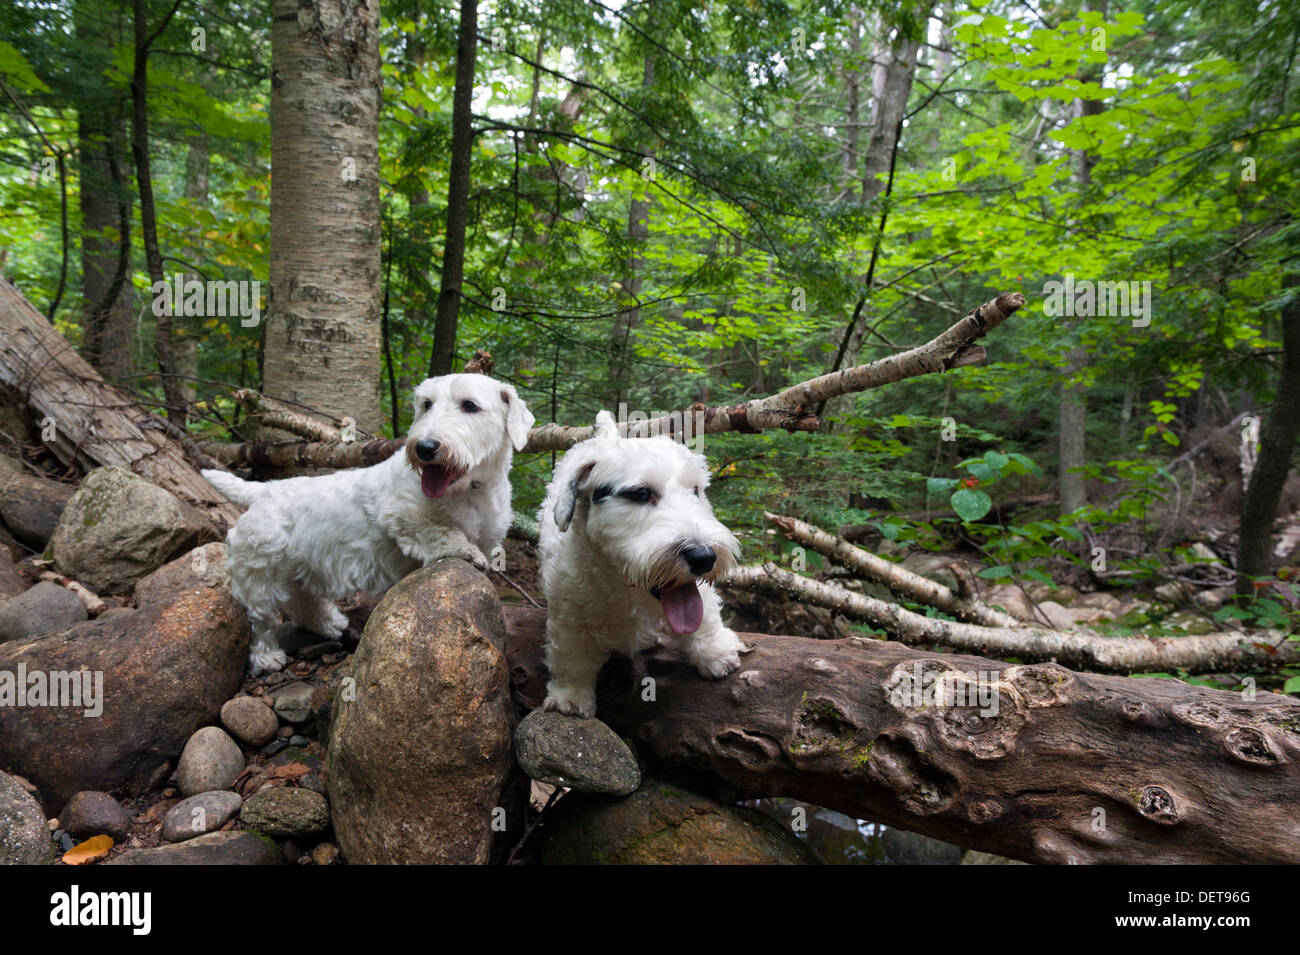 Two Sealyham Terriers in the forest. - Stock Image